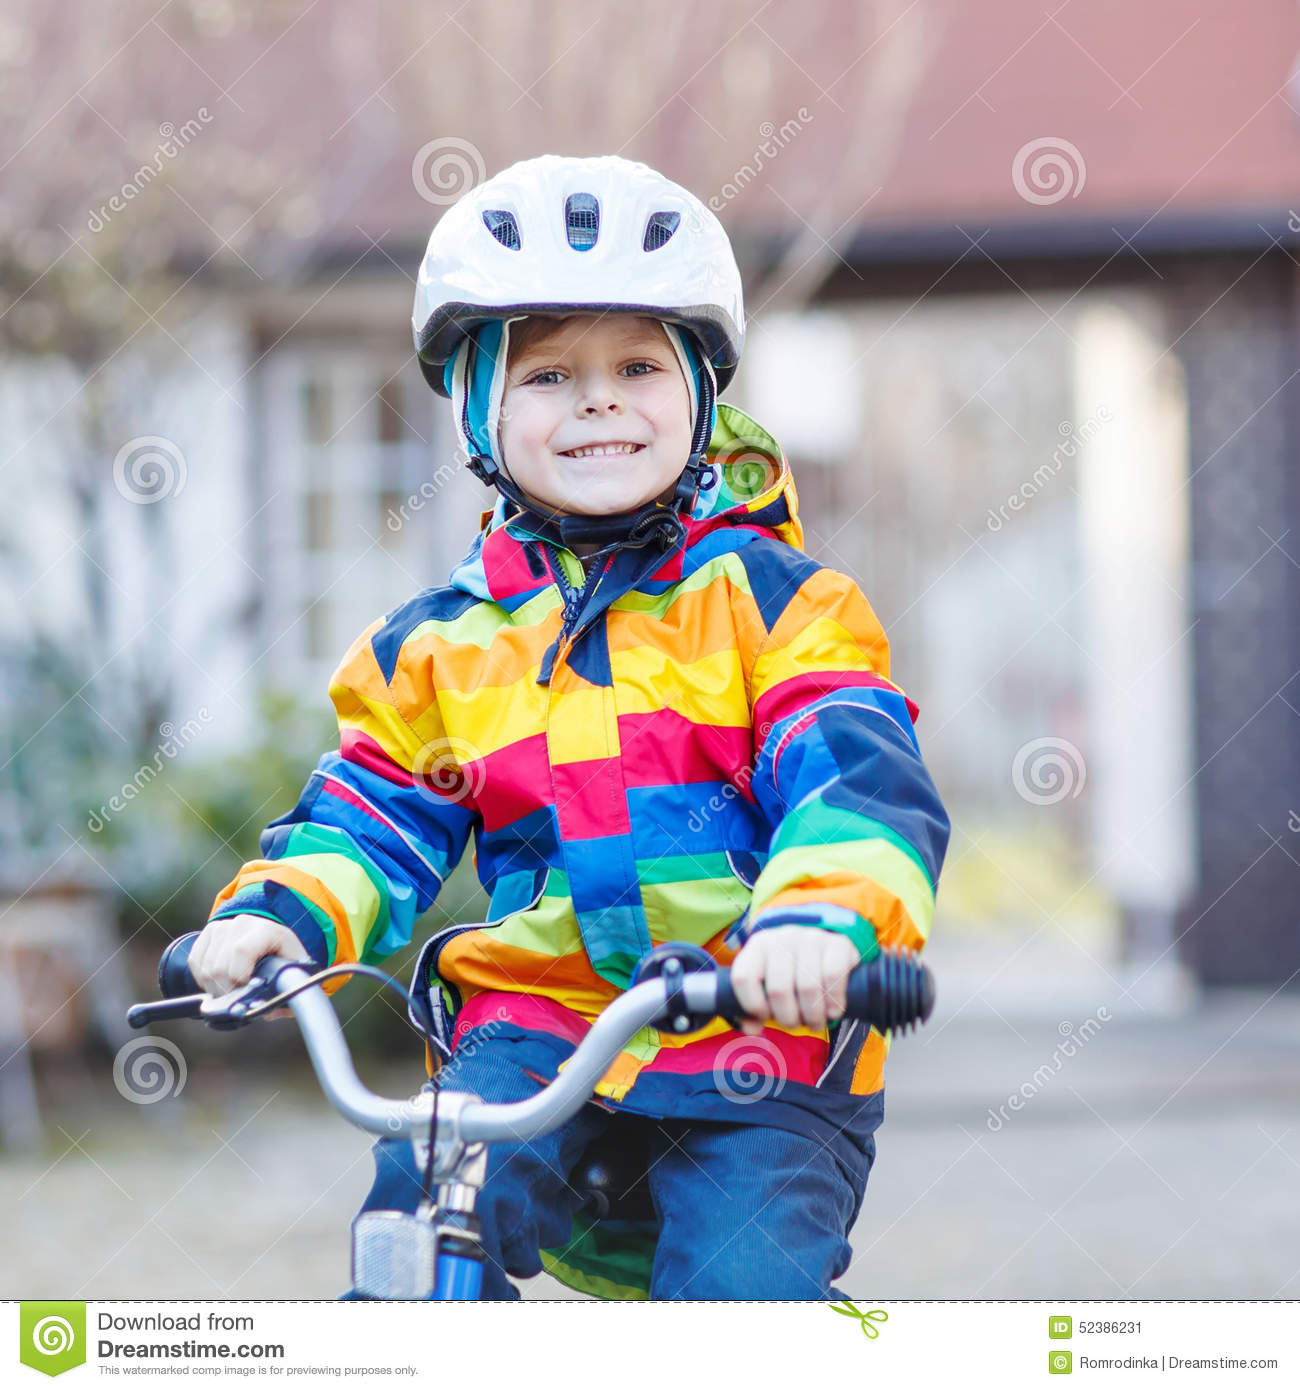 Kid Boy In Safety Helmet And Colorful Raincoat Riding Bike